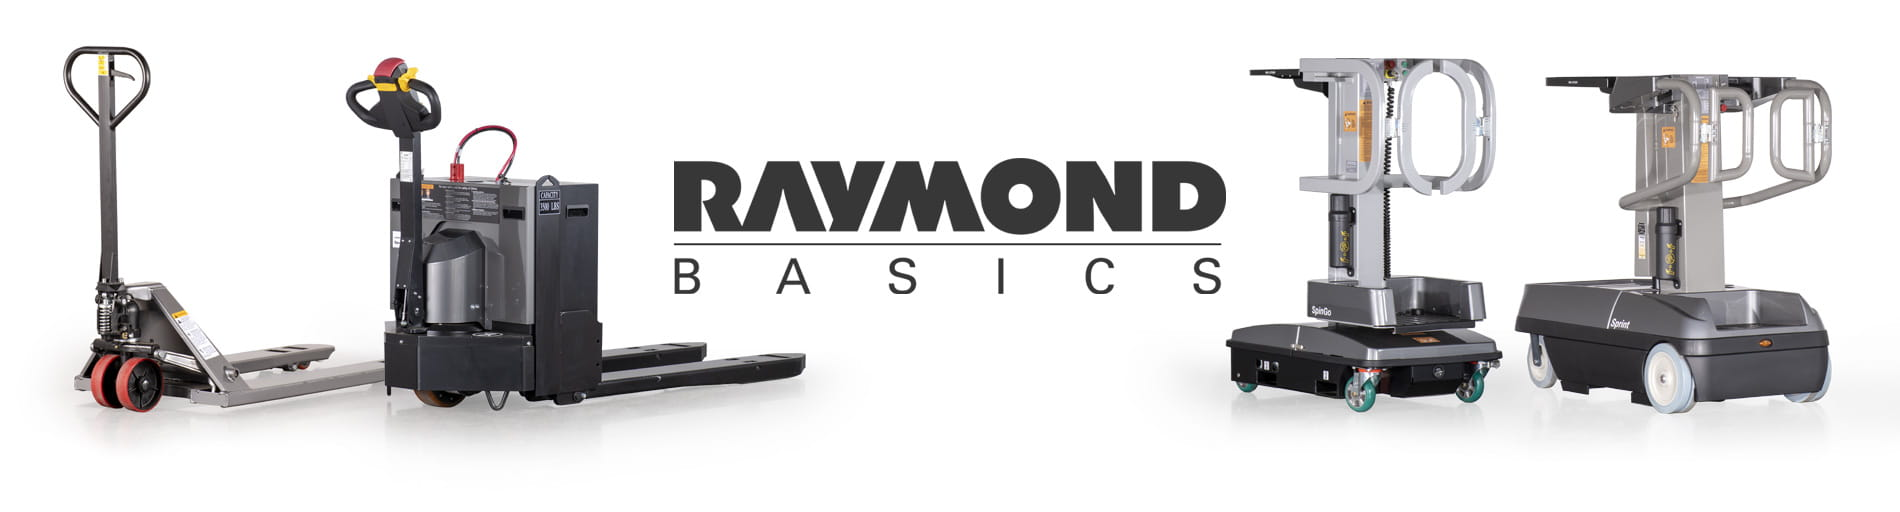 raymond basics, warehouse essentials